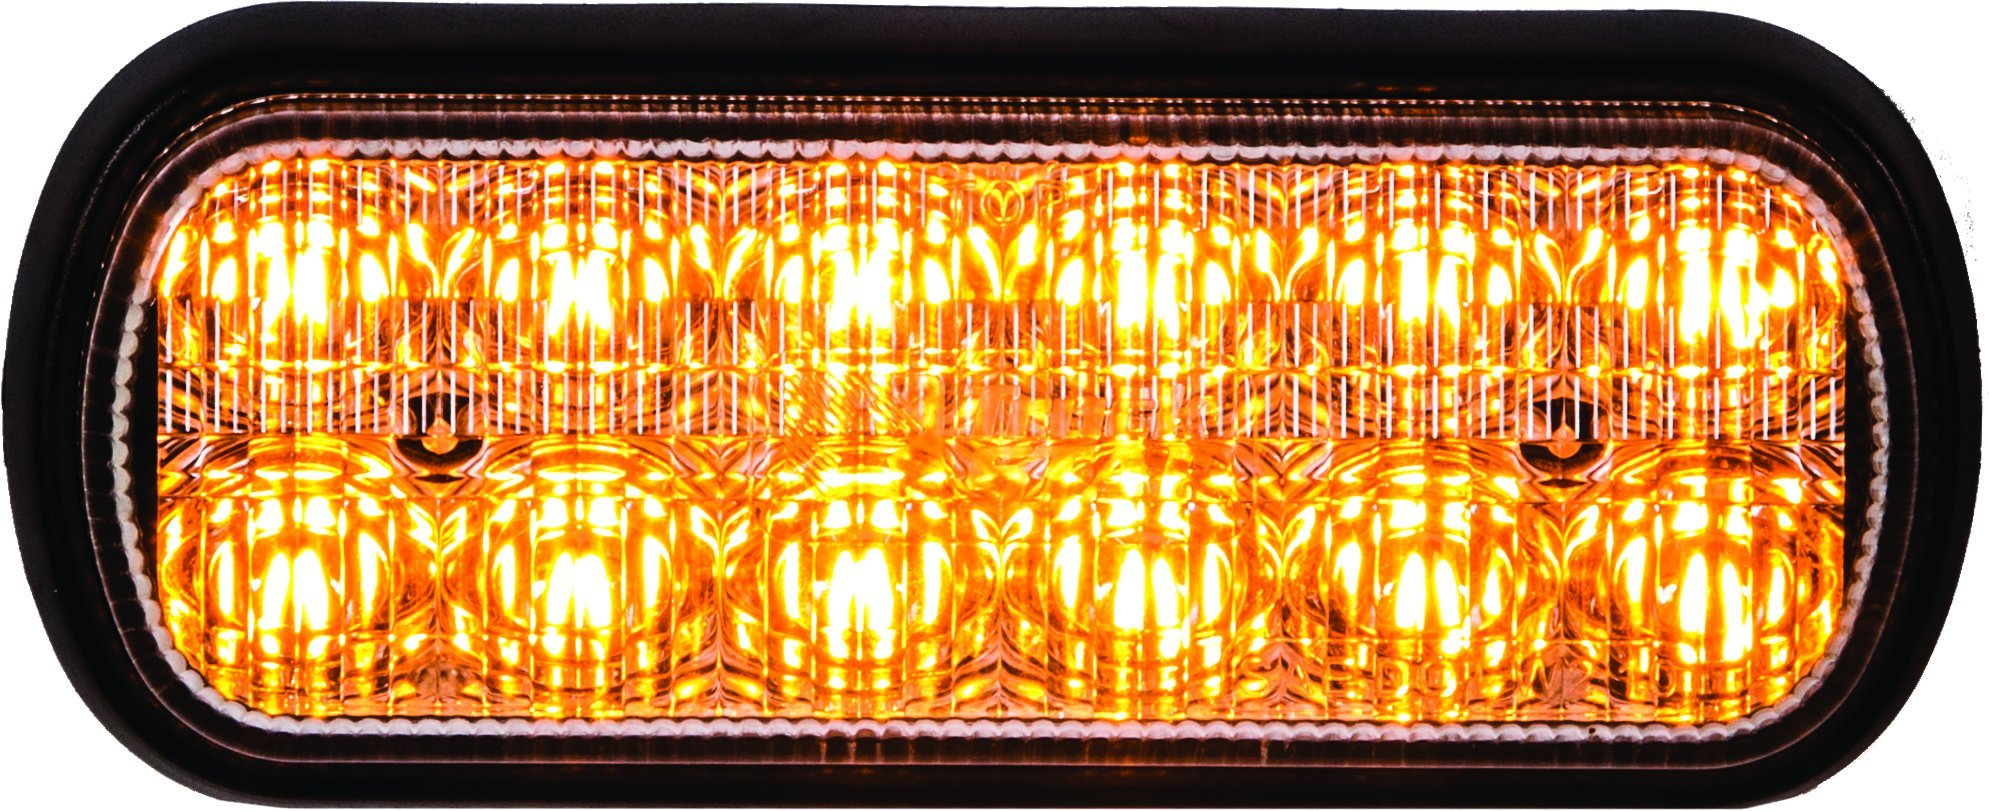 Buyers Products 8891600 Amber LED Strobe Light (5in)